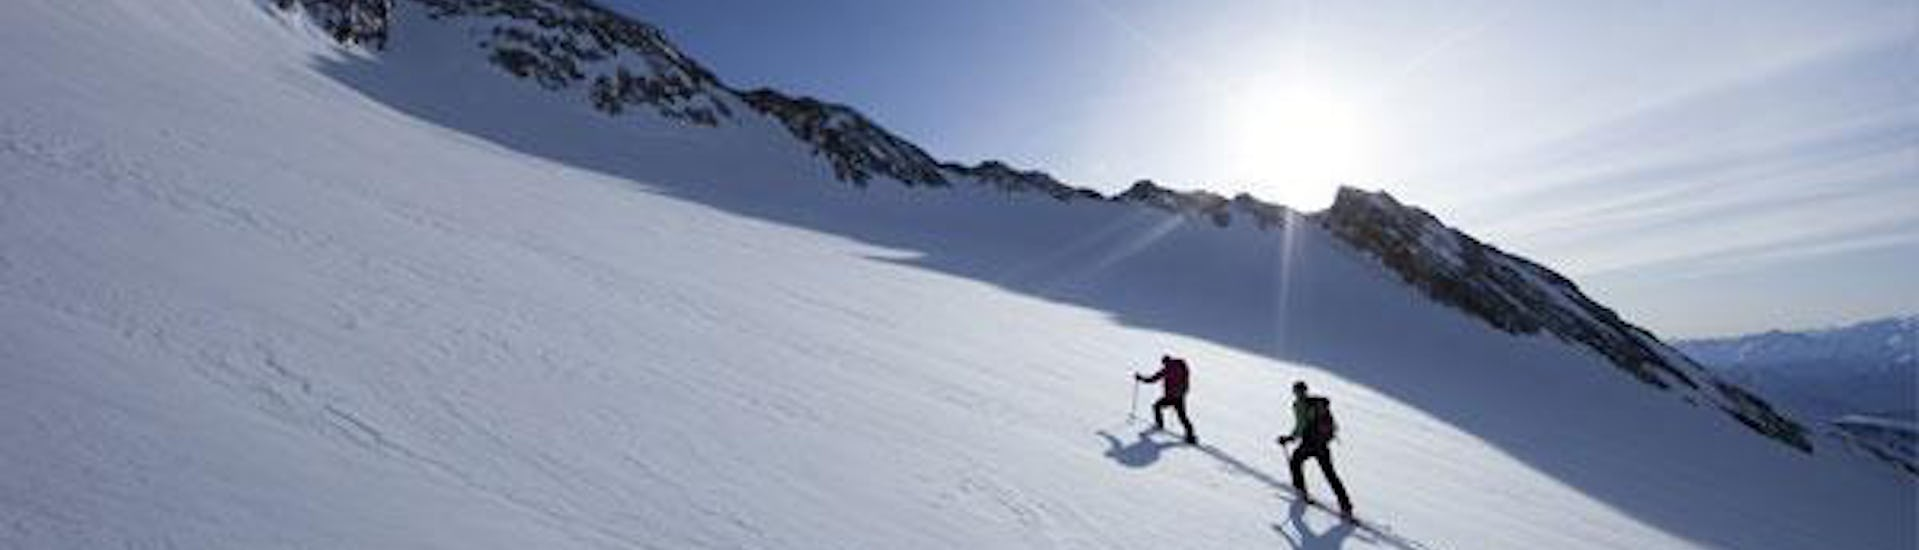 Two participants of the Private Ski Touring Guide - Difficult organized by the school Alpinschule Sölden are skiing on a snowy landscape in the ski resort of Sölden.